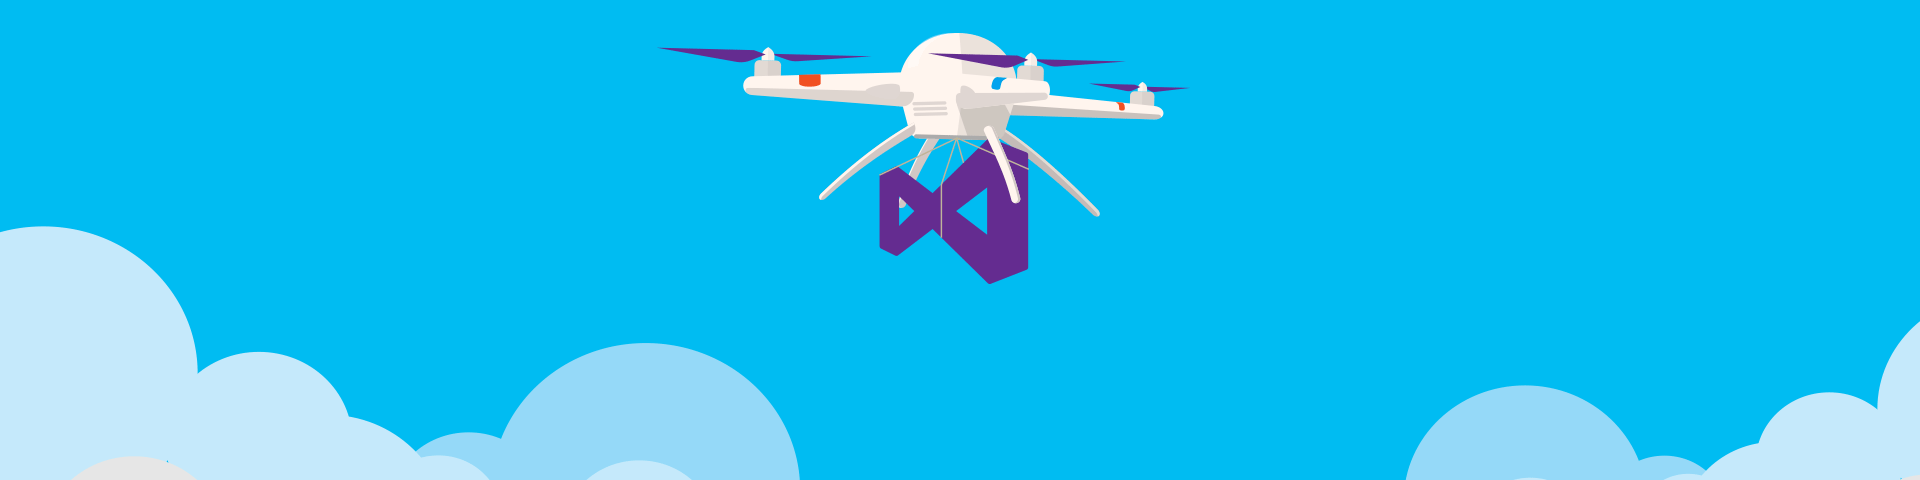 Illustration d'un drone en plein vol avec le logo Visual Studio